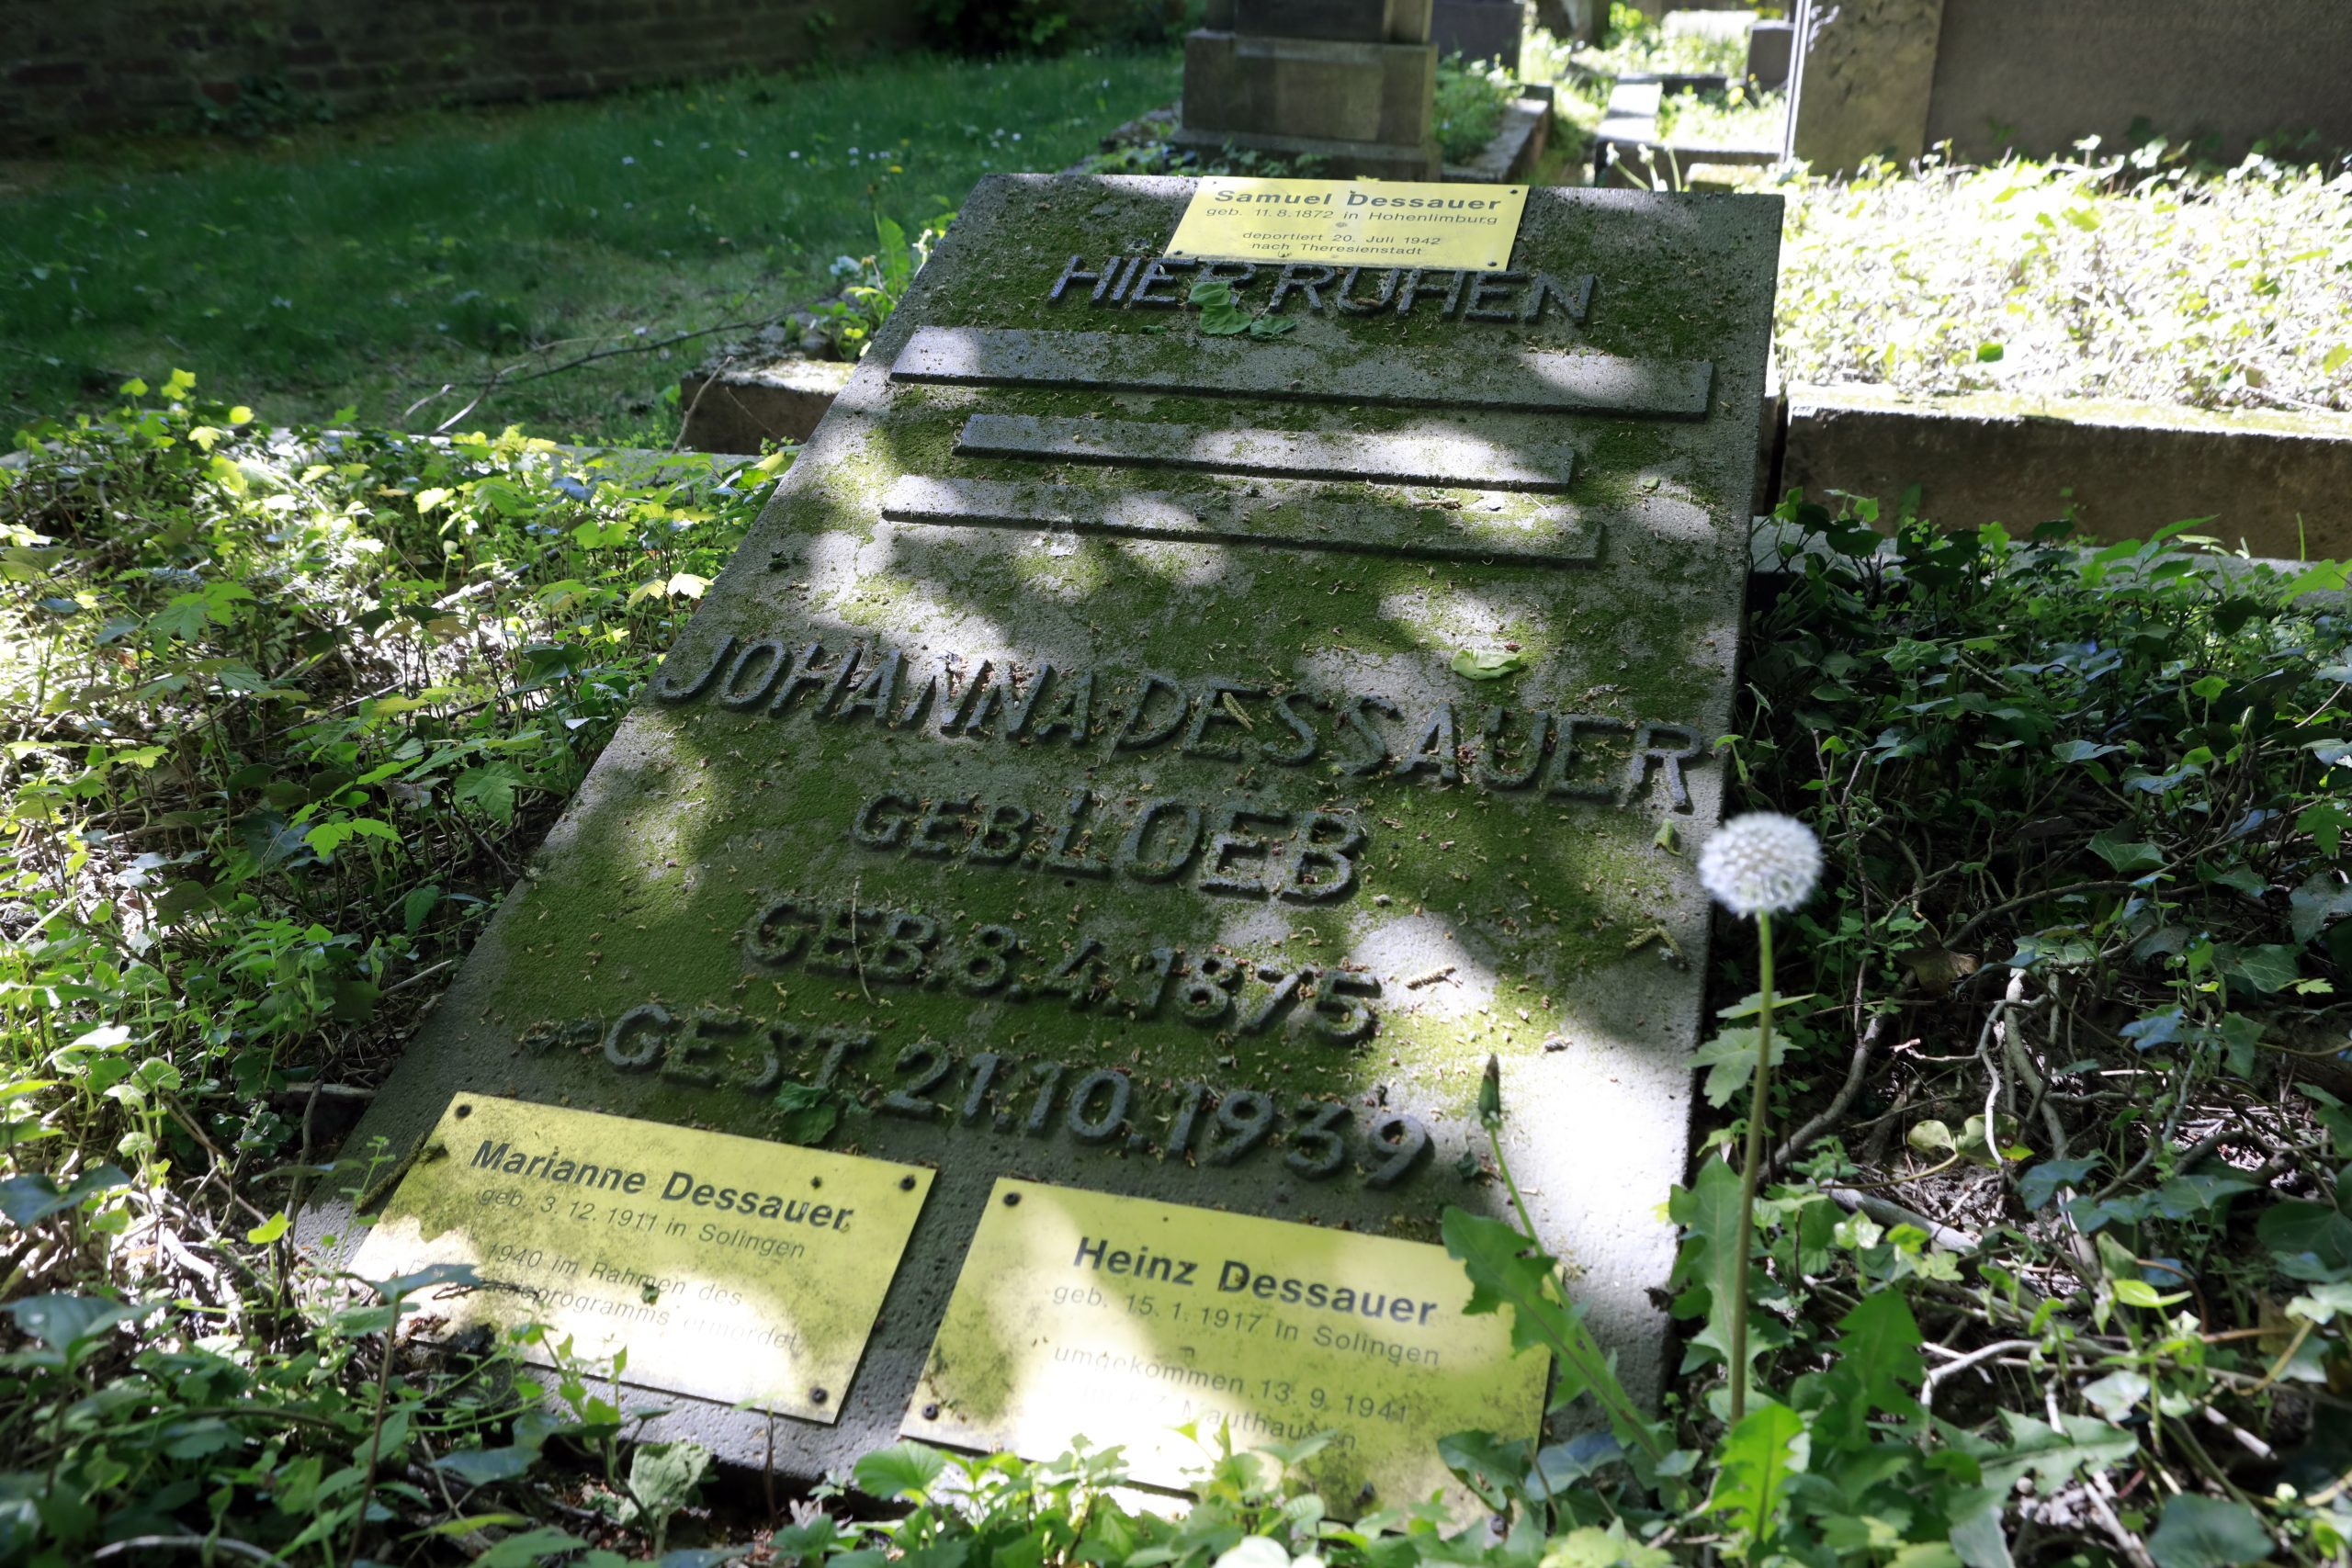 The youngest gravestone is from Johanna Dessauer